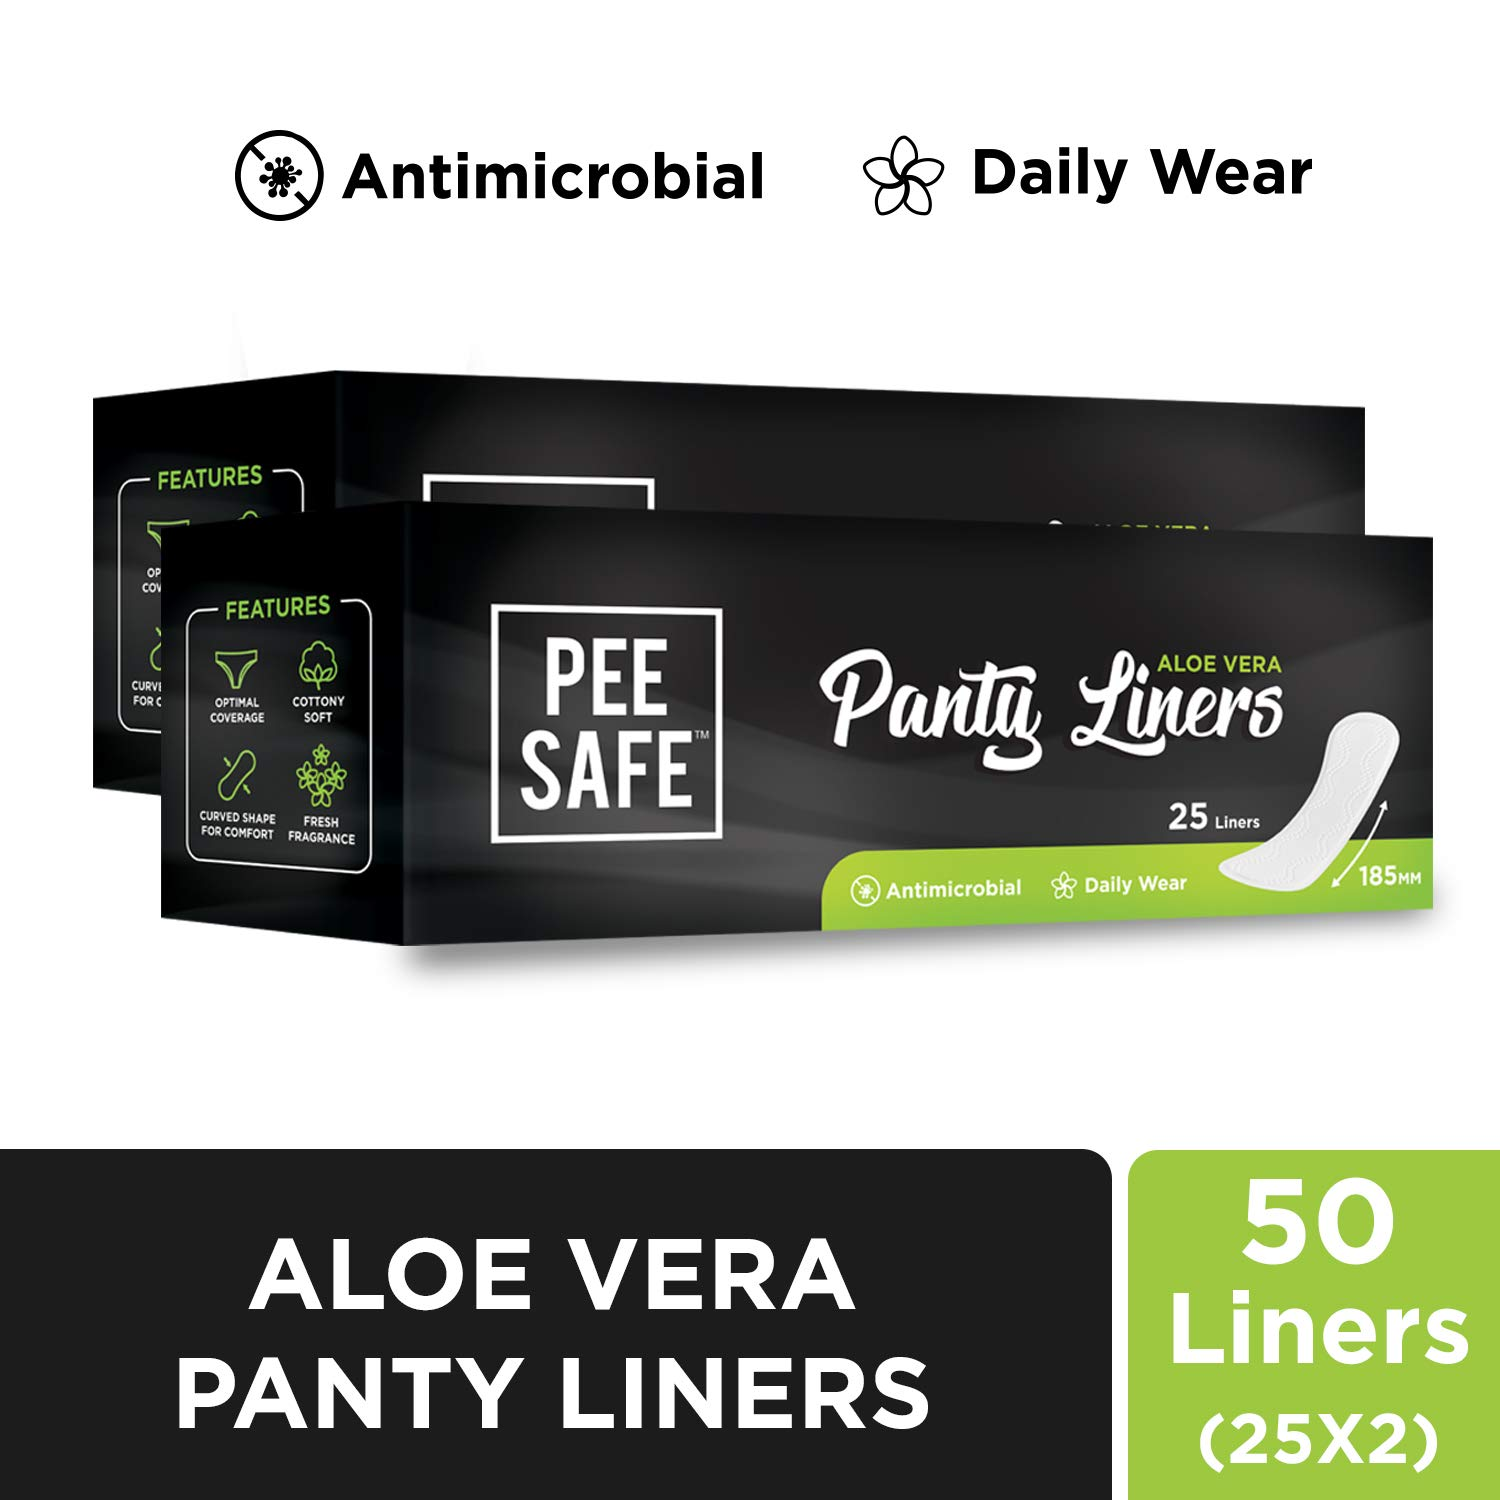 Pee Safe Aloe Vera Panty Liners (Set of 2, 50 Count) product image